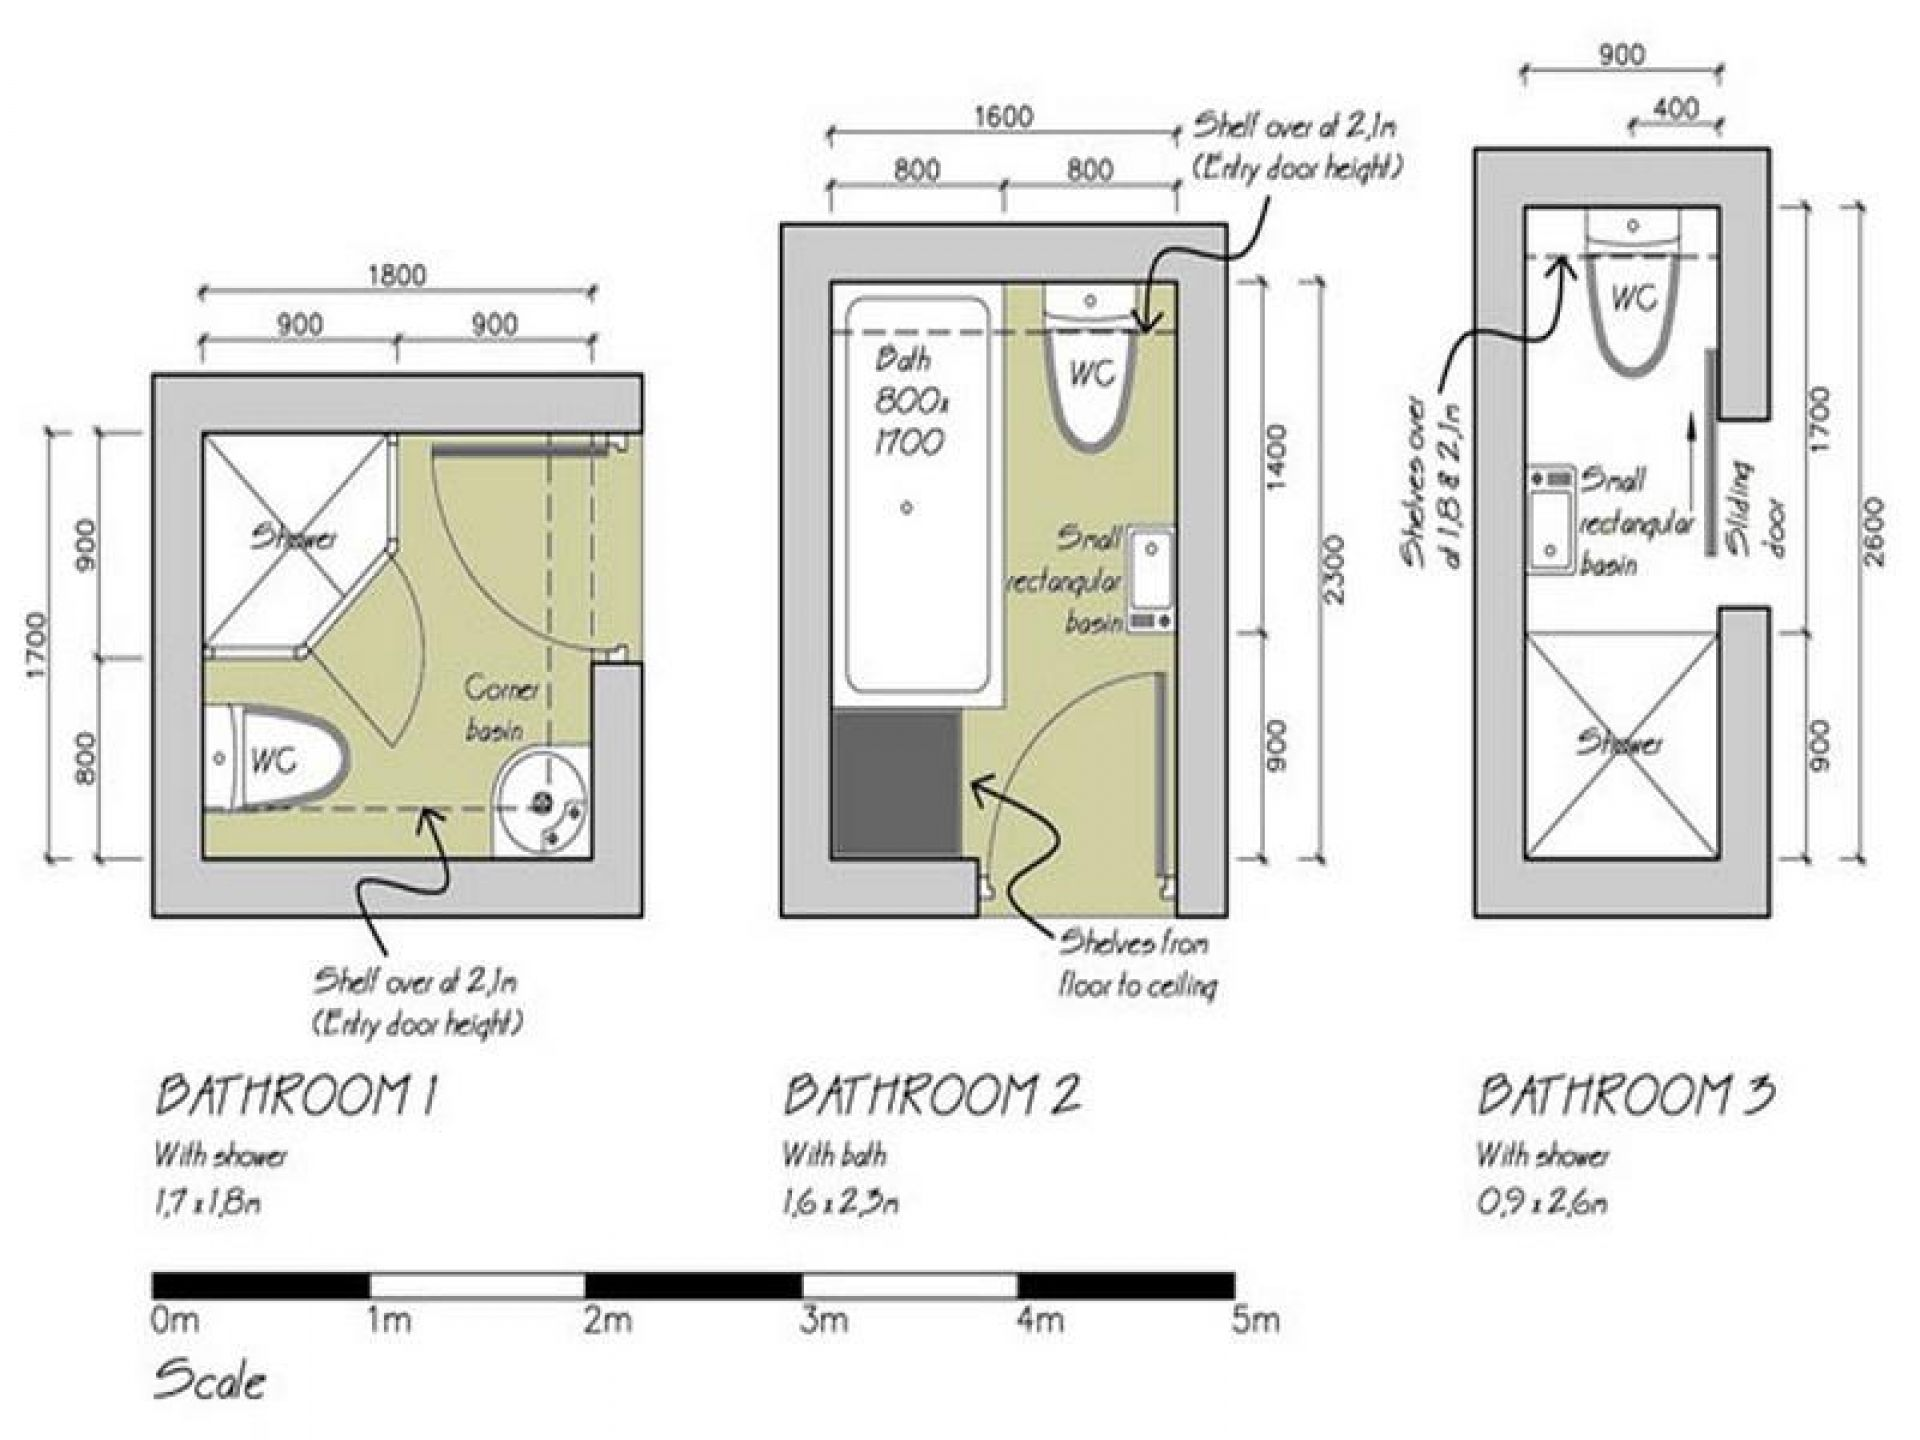 Bathroom layout dimensions - Epic Small Bathroom Floor Plans With Small Bathtub And Single Toilet Sink Beside